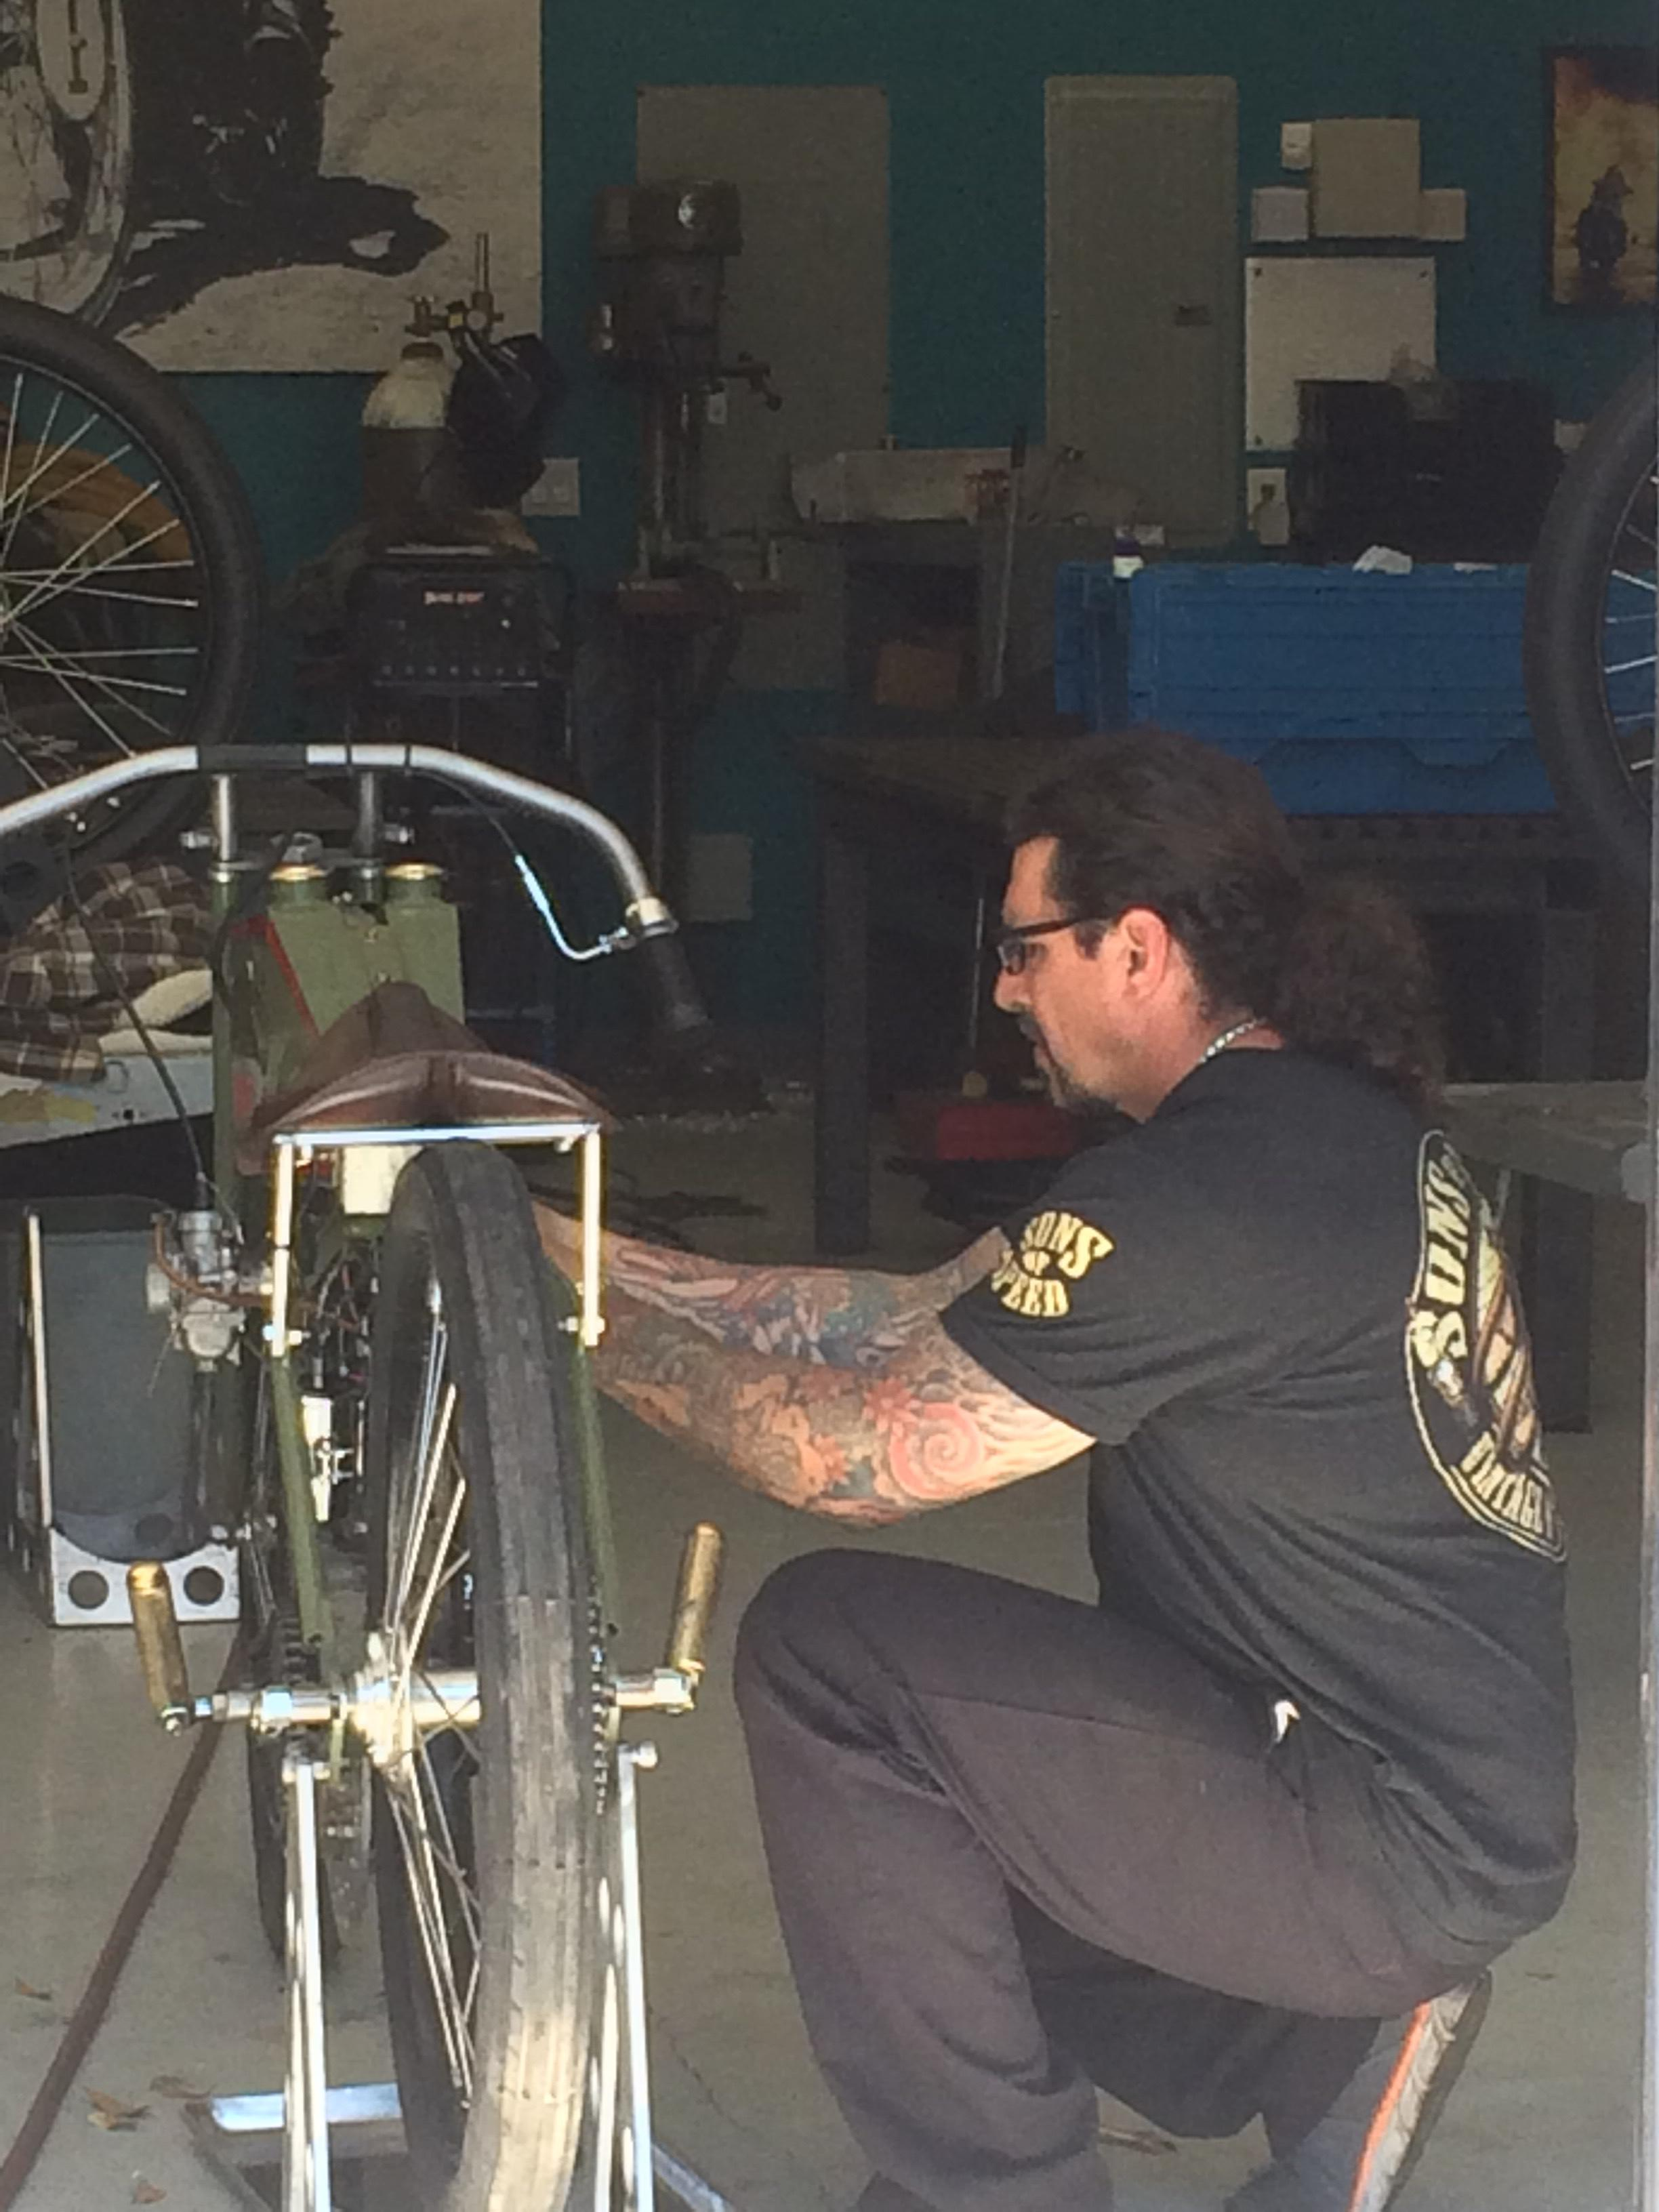 Billy works tirelessly to get motorcycles ready for race day